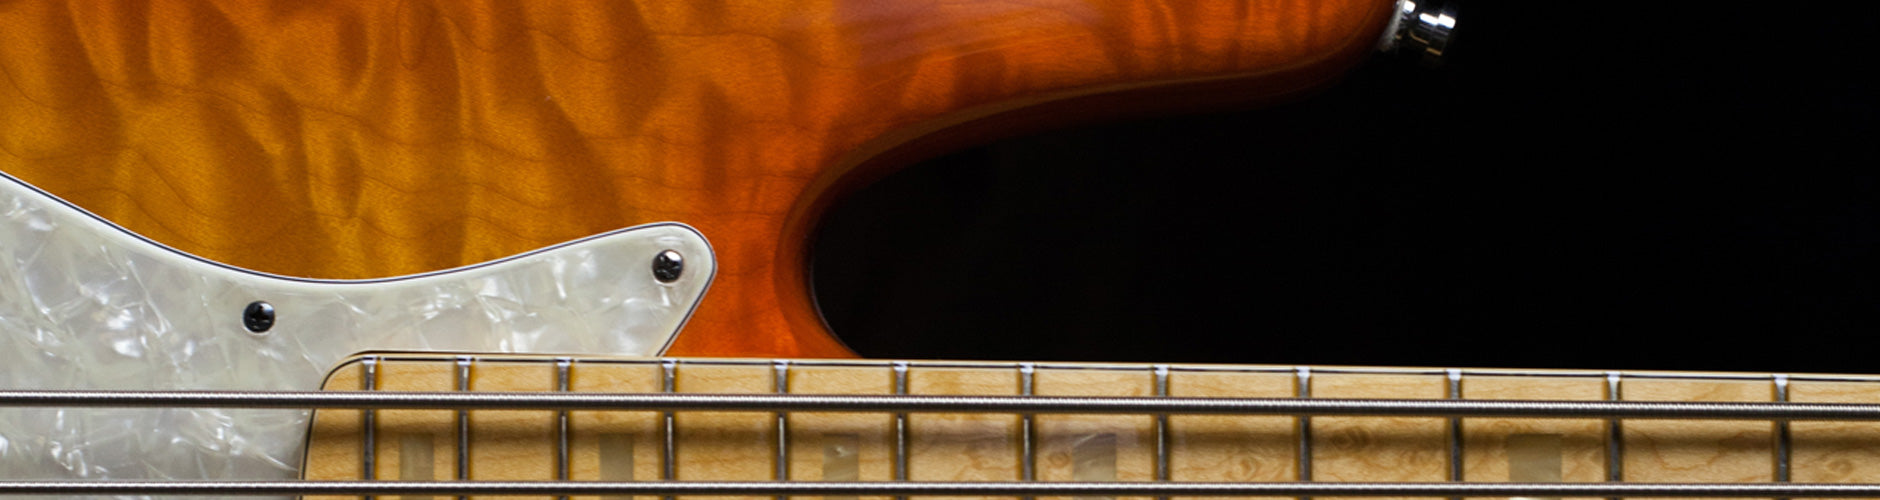 Fender Custom Shop Basses At The Music Zoo